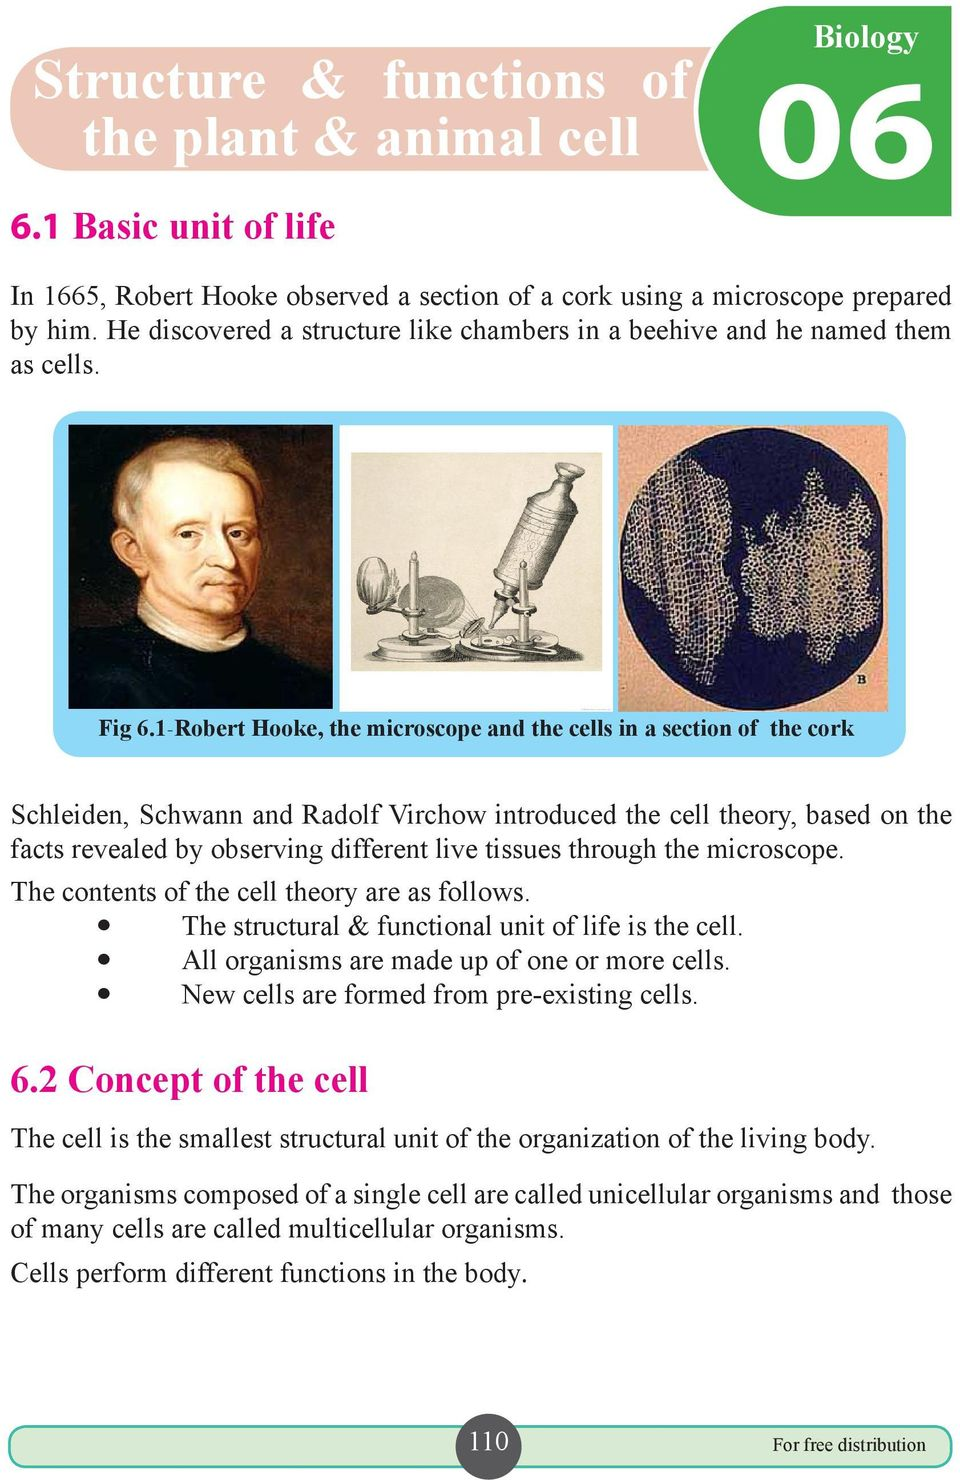 1-Robert Hooke, the microscope and the cells in a section of the cork Schleiden, Schwann and Radolf Virchow introduced the cell theory, based on the facts revealed by observing different live tissues